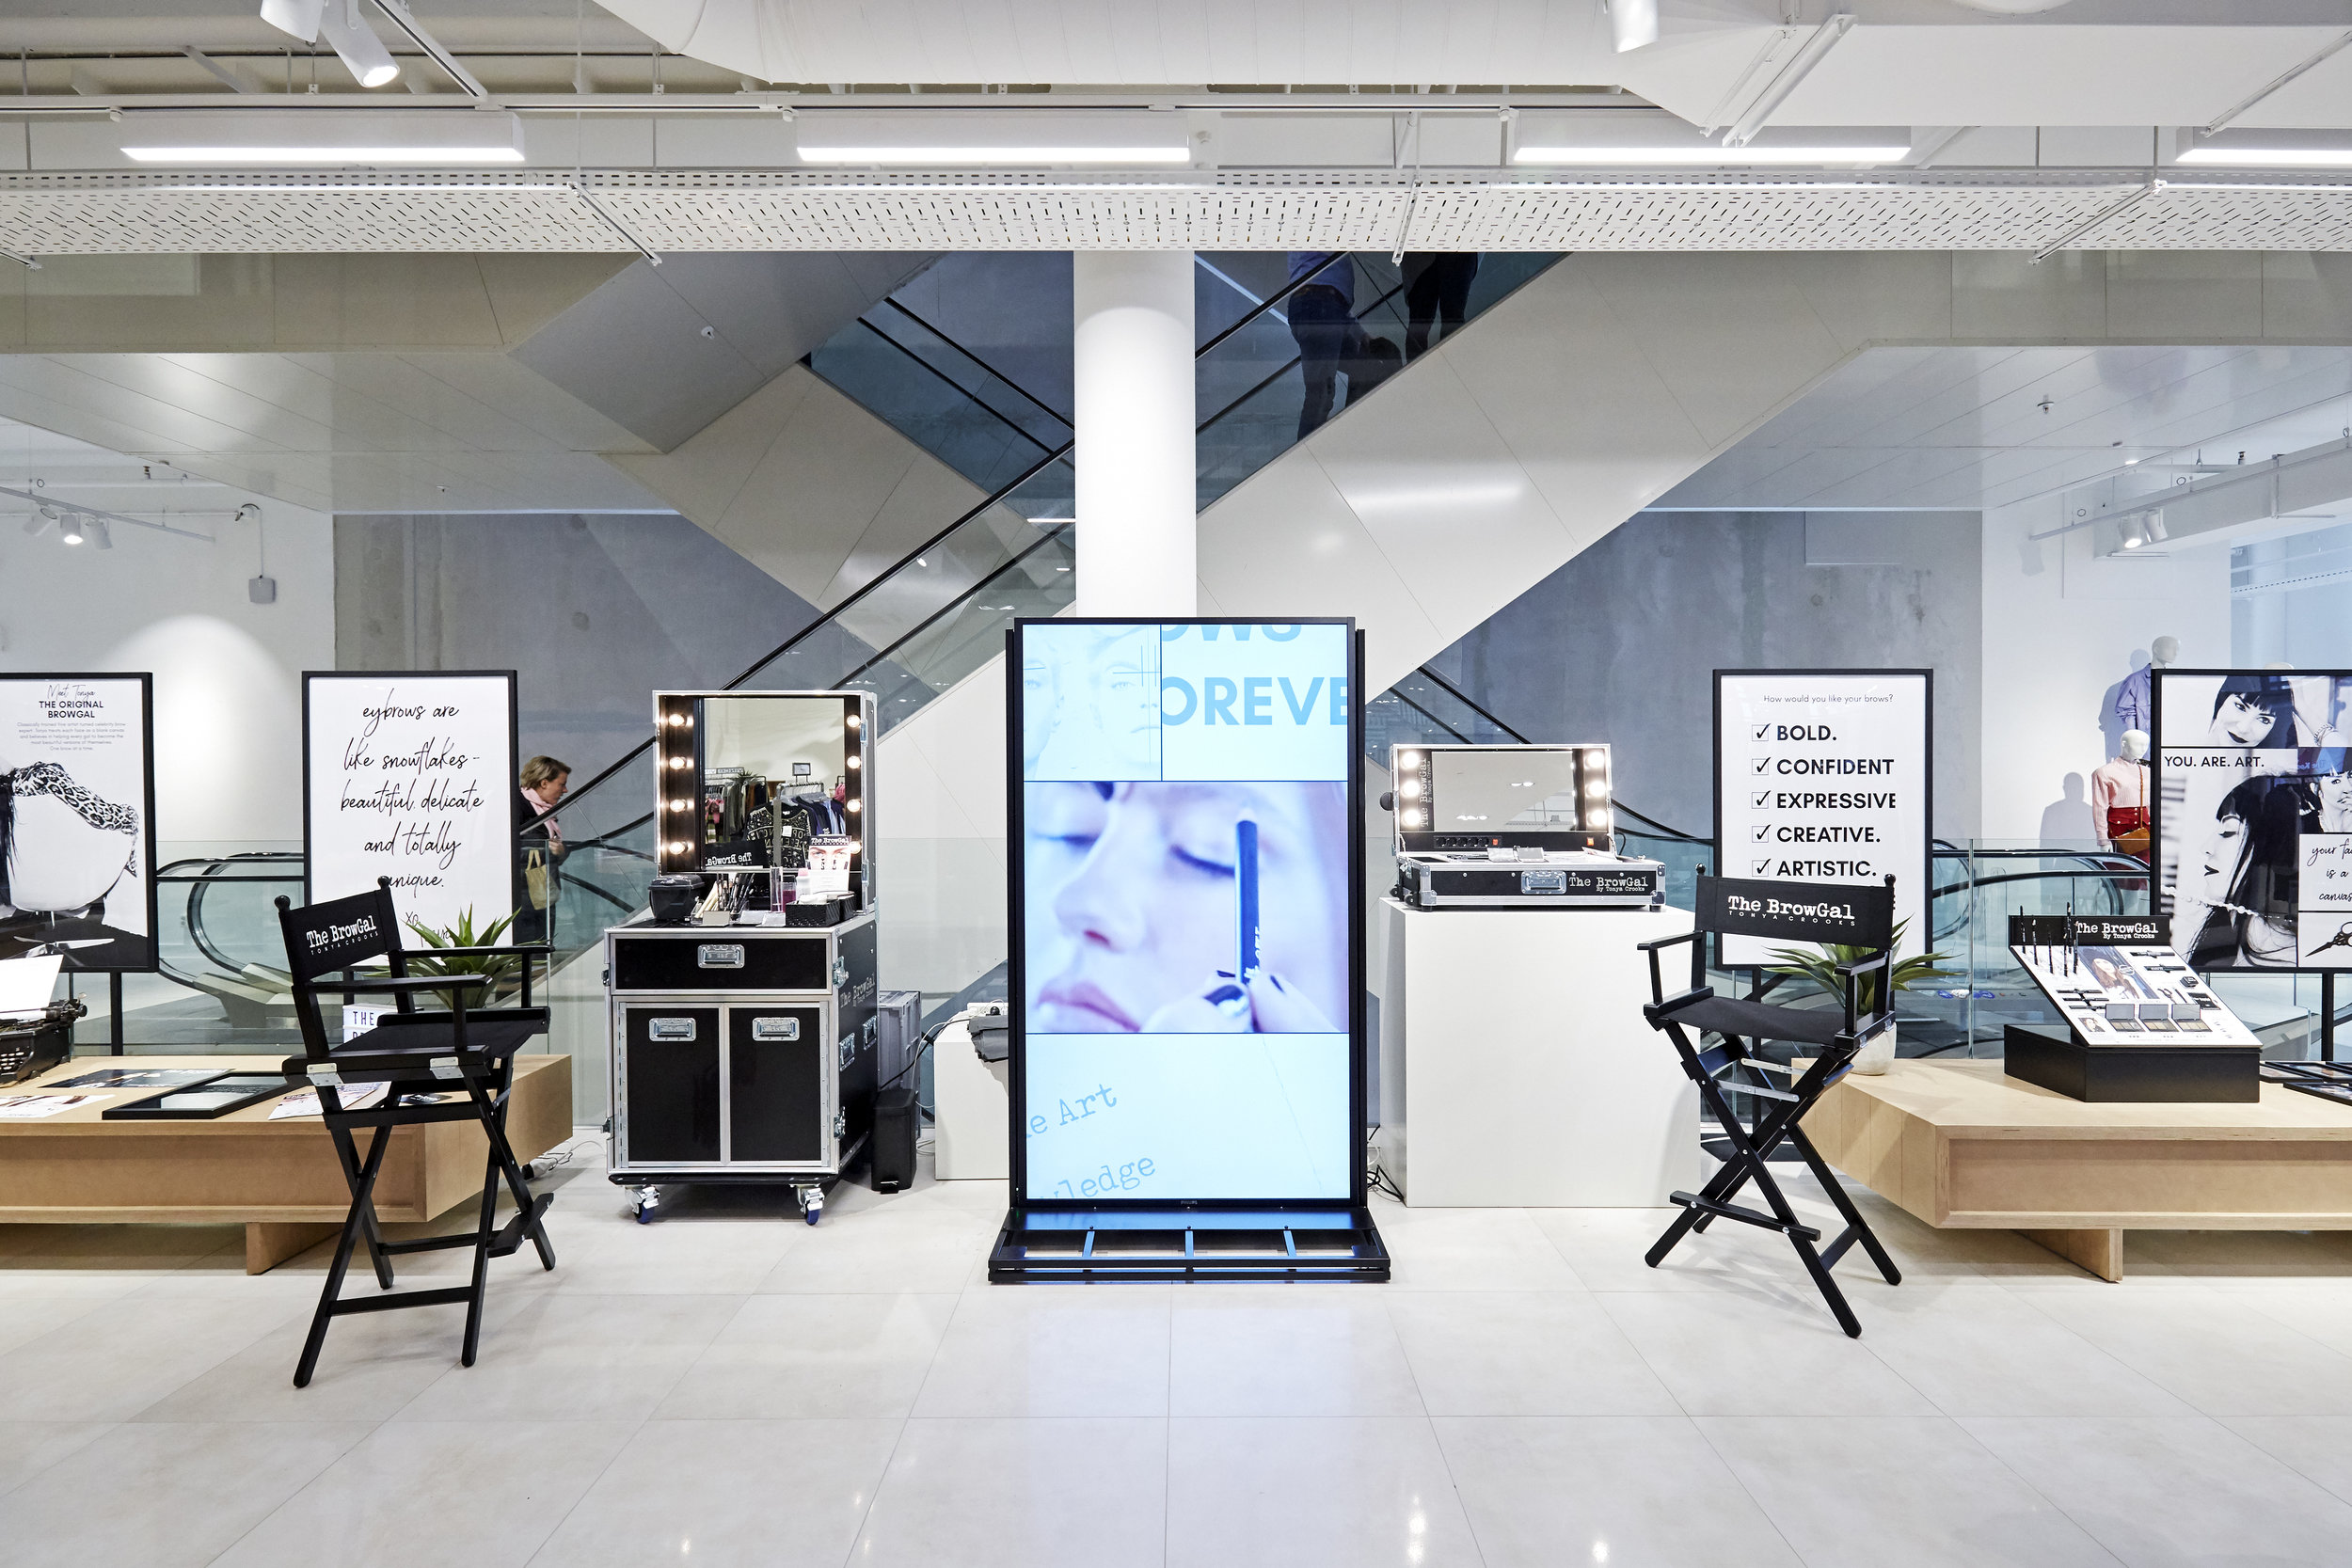 POP UP SHOPEXPERIENCE DESIGN - Conception + Creation for Analog Brand Experience